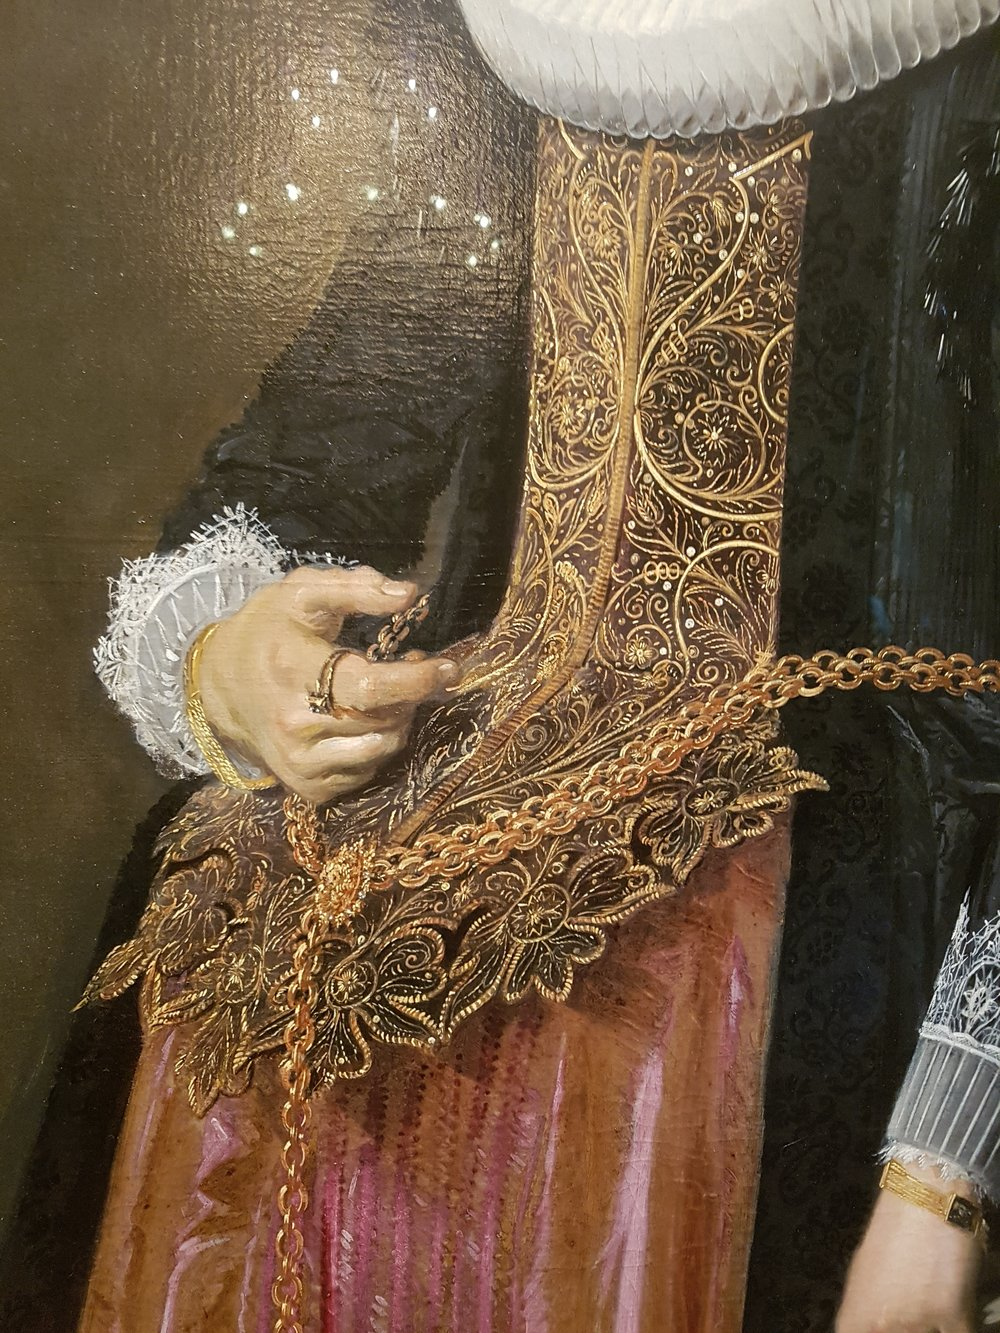 inicredible brocade detail in dutch master paintings